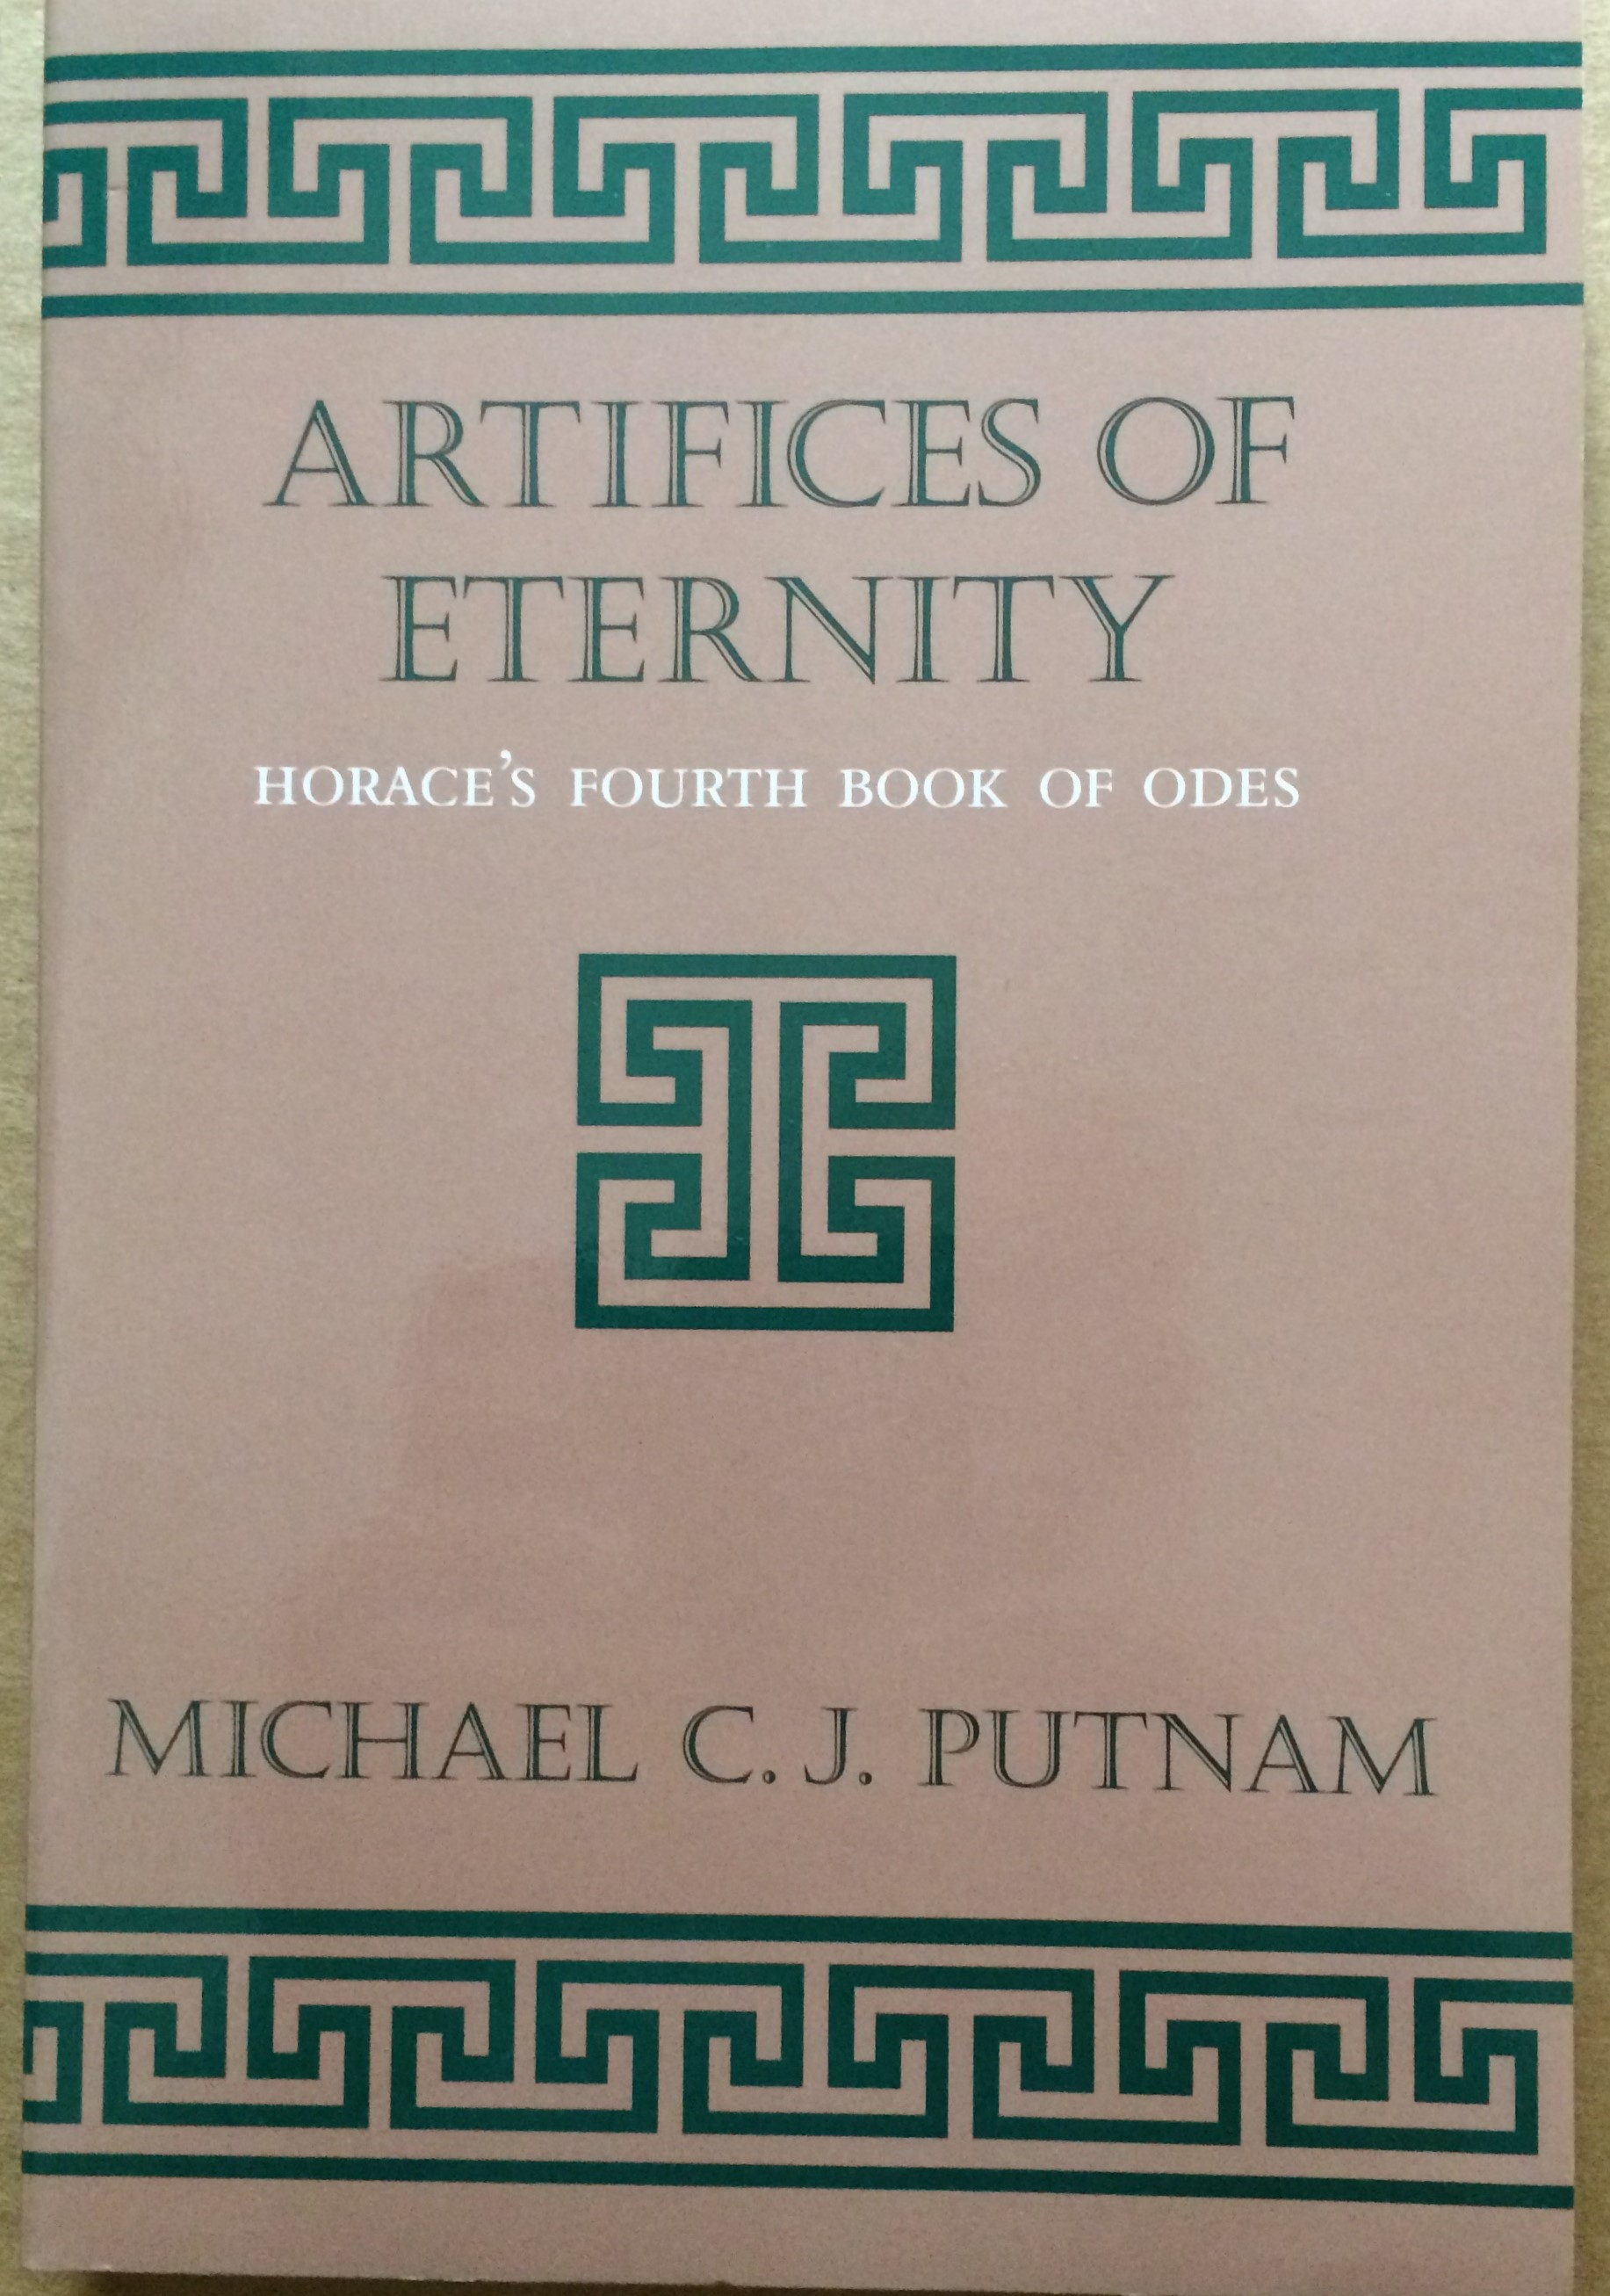 Image for Artifices of Eternity, Horace's Fourth Book of Odes